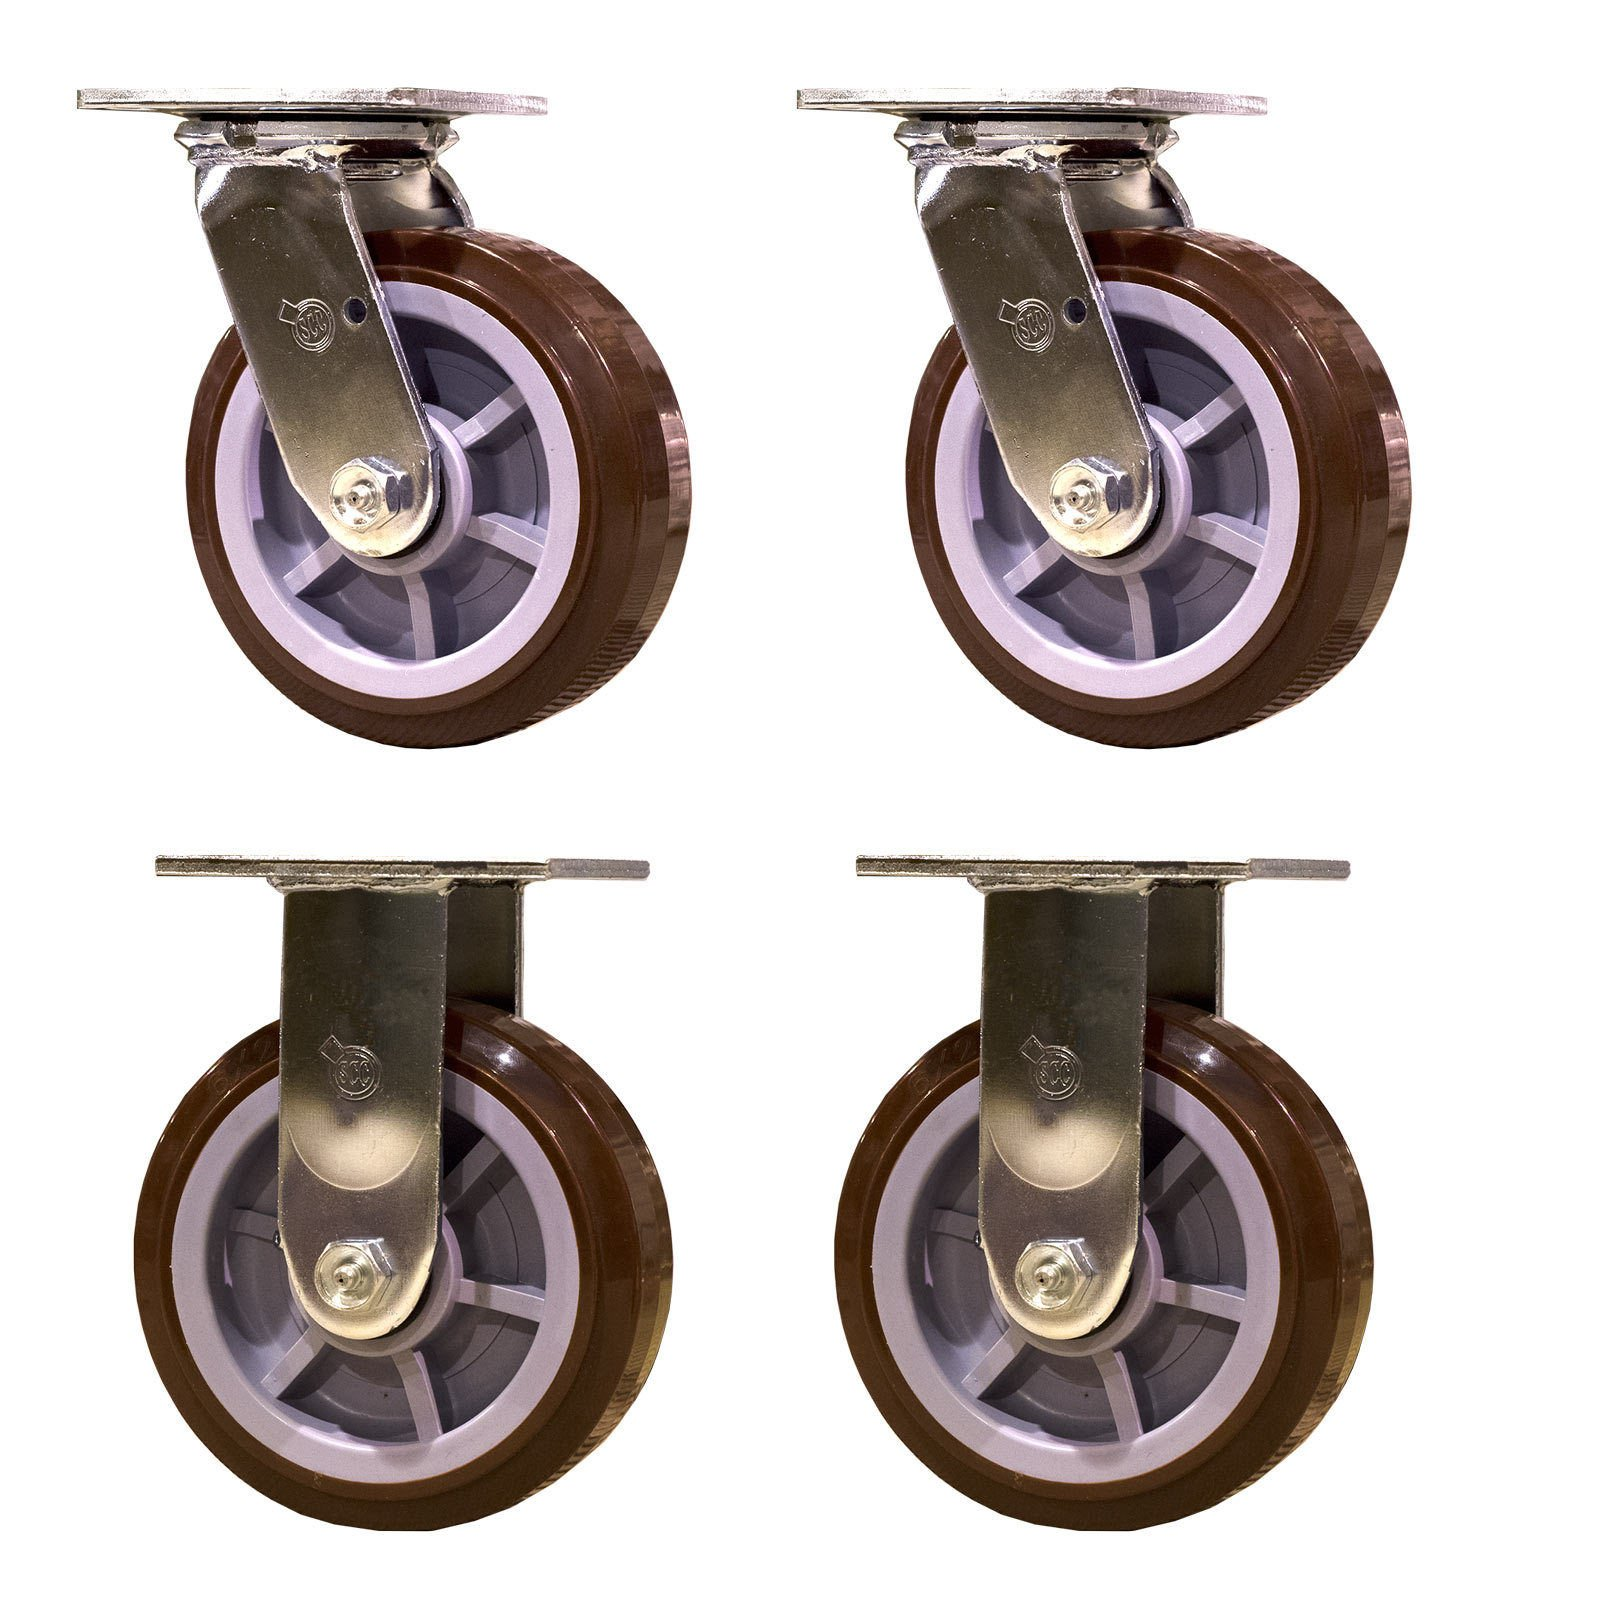 Service Caster SCC-30CS620-PPUR-2-R620-2 Heavy Duty Casters Polyurethane Wheel, Swivel and Rigid Non-Marking, 6'' Size (Pack of 4)